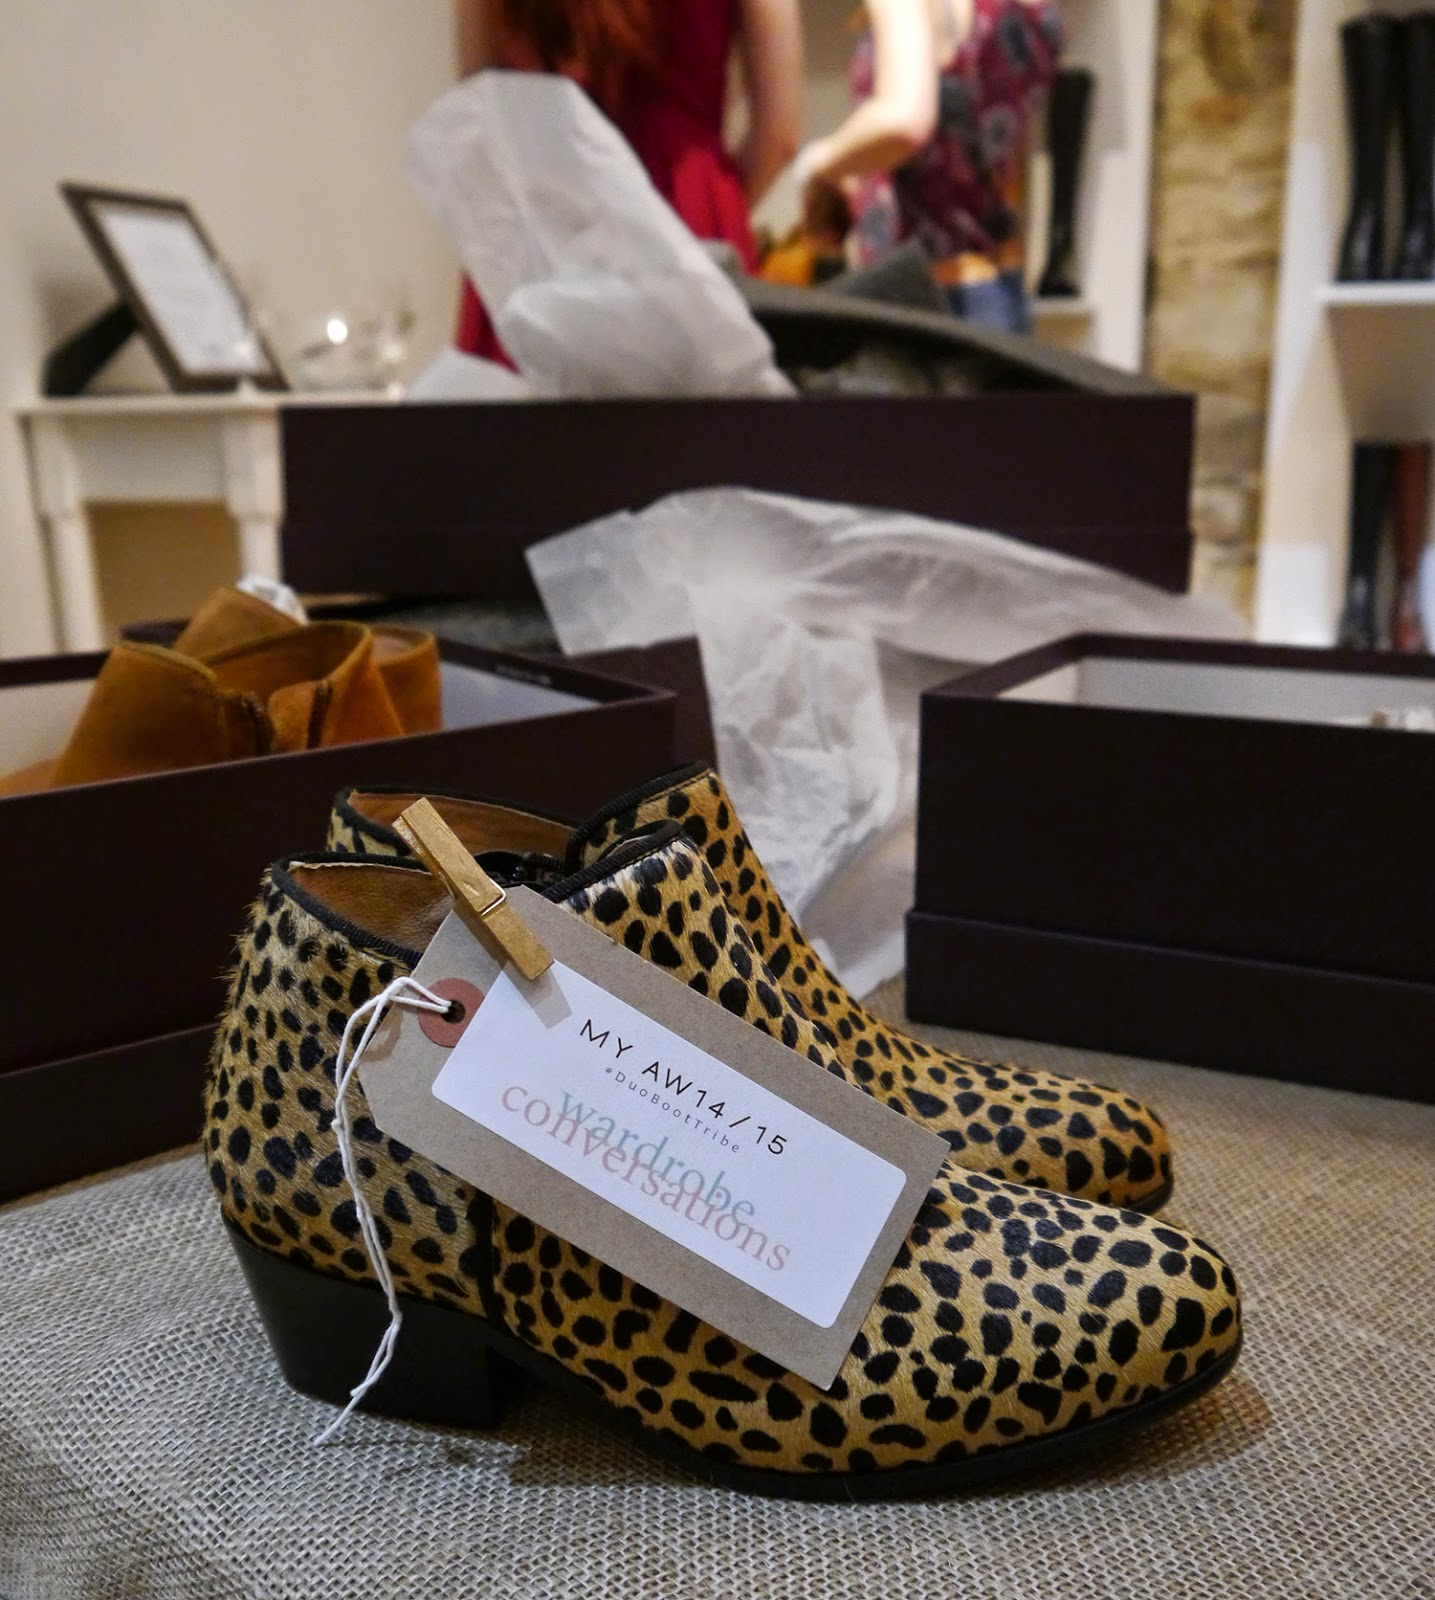 DUO, Edinburgh event, Blogger event, Scottish bloggers, blogging duo, ankle boots, autumn style, animal print, leopard print, boots, Wardrobe Conversations, #boottribe, #DUOBootTribe, Duo Boot Tribe